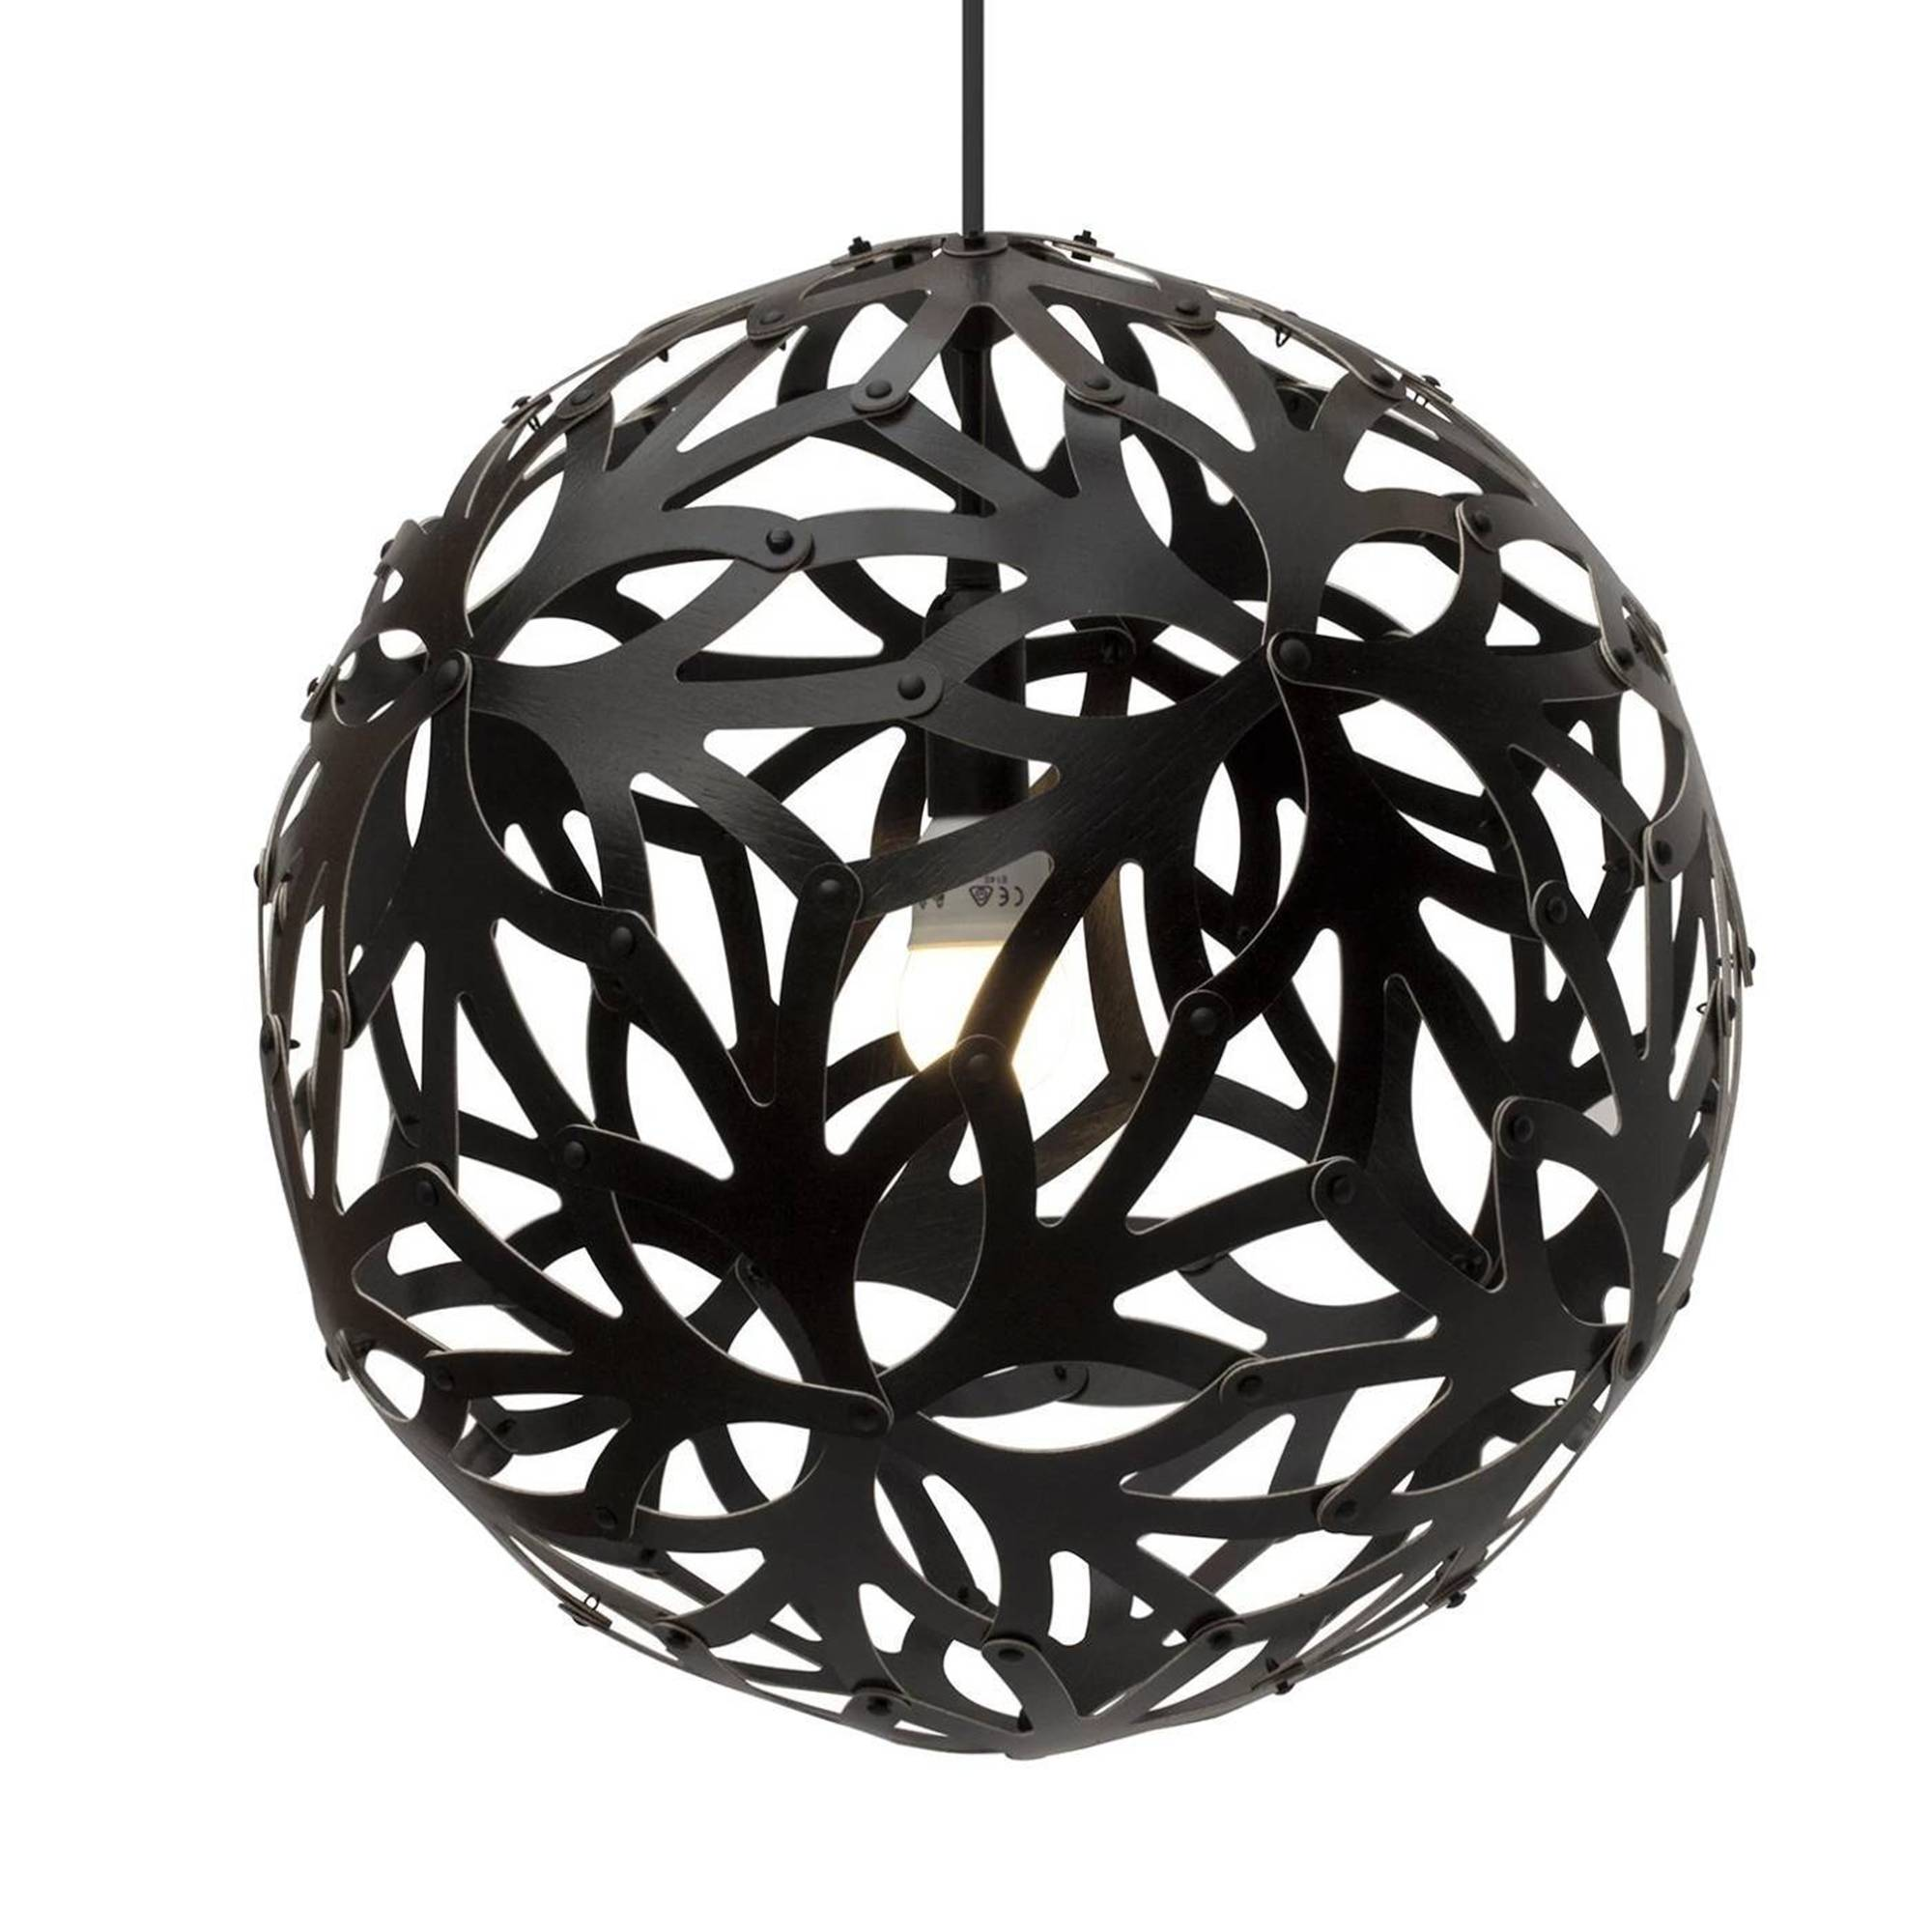 Floral Pendant Light: 1200 + Black Two Sides